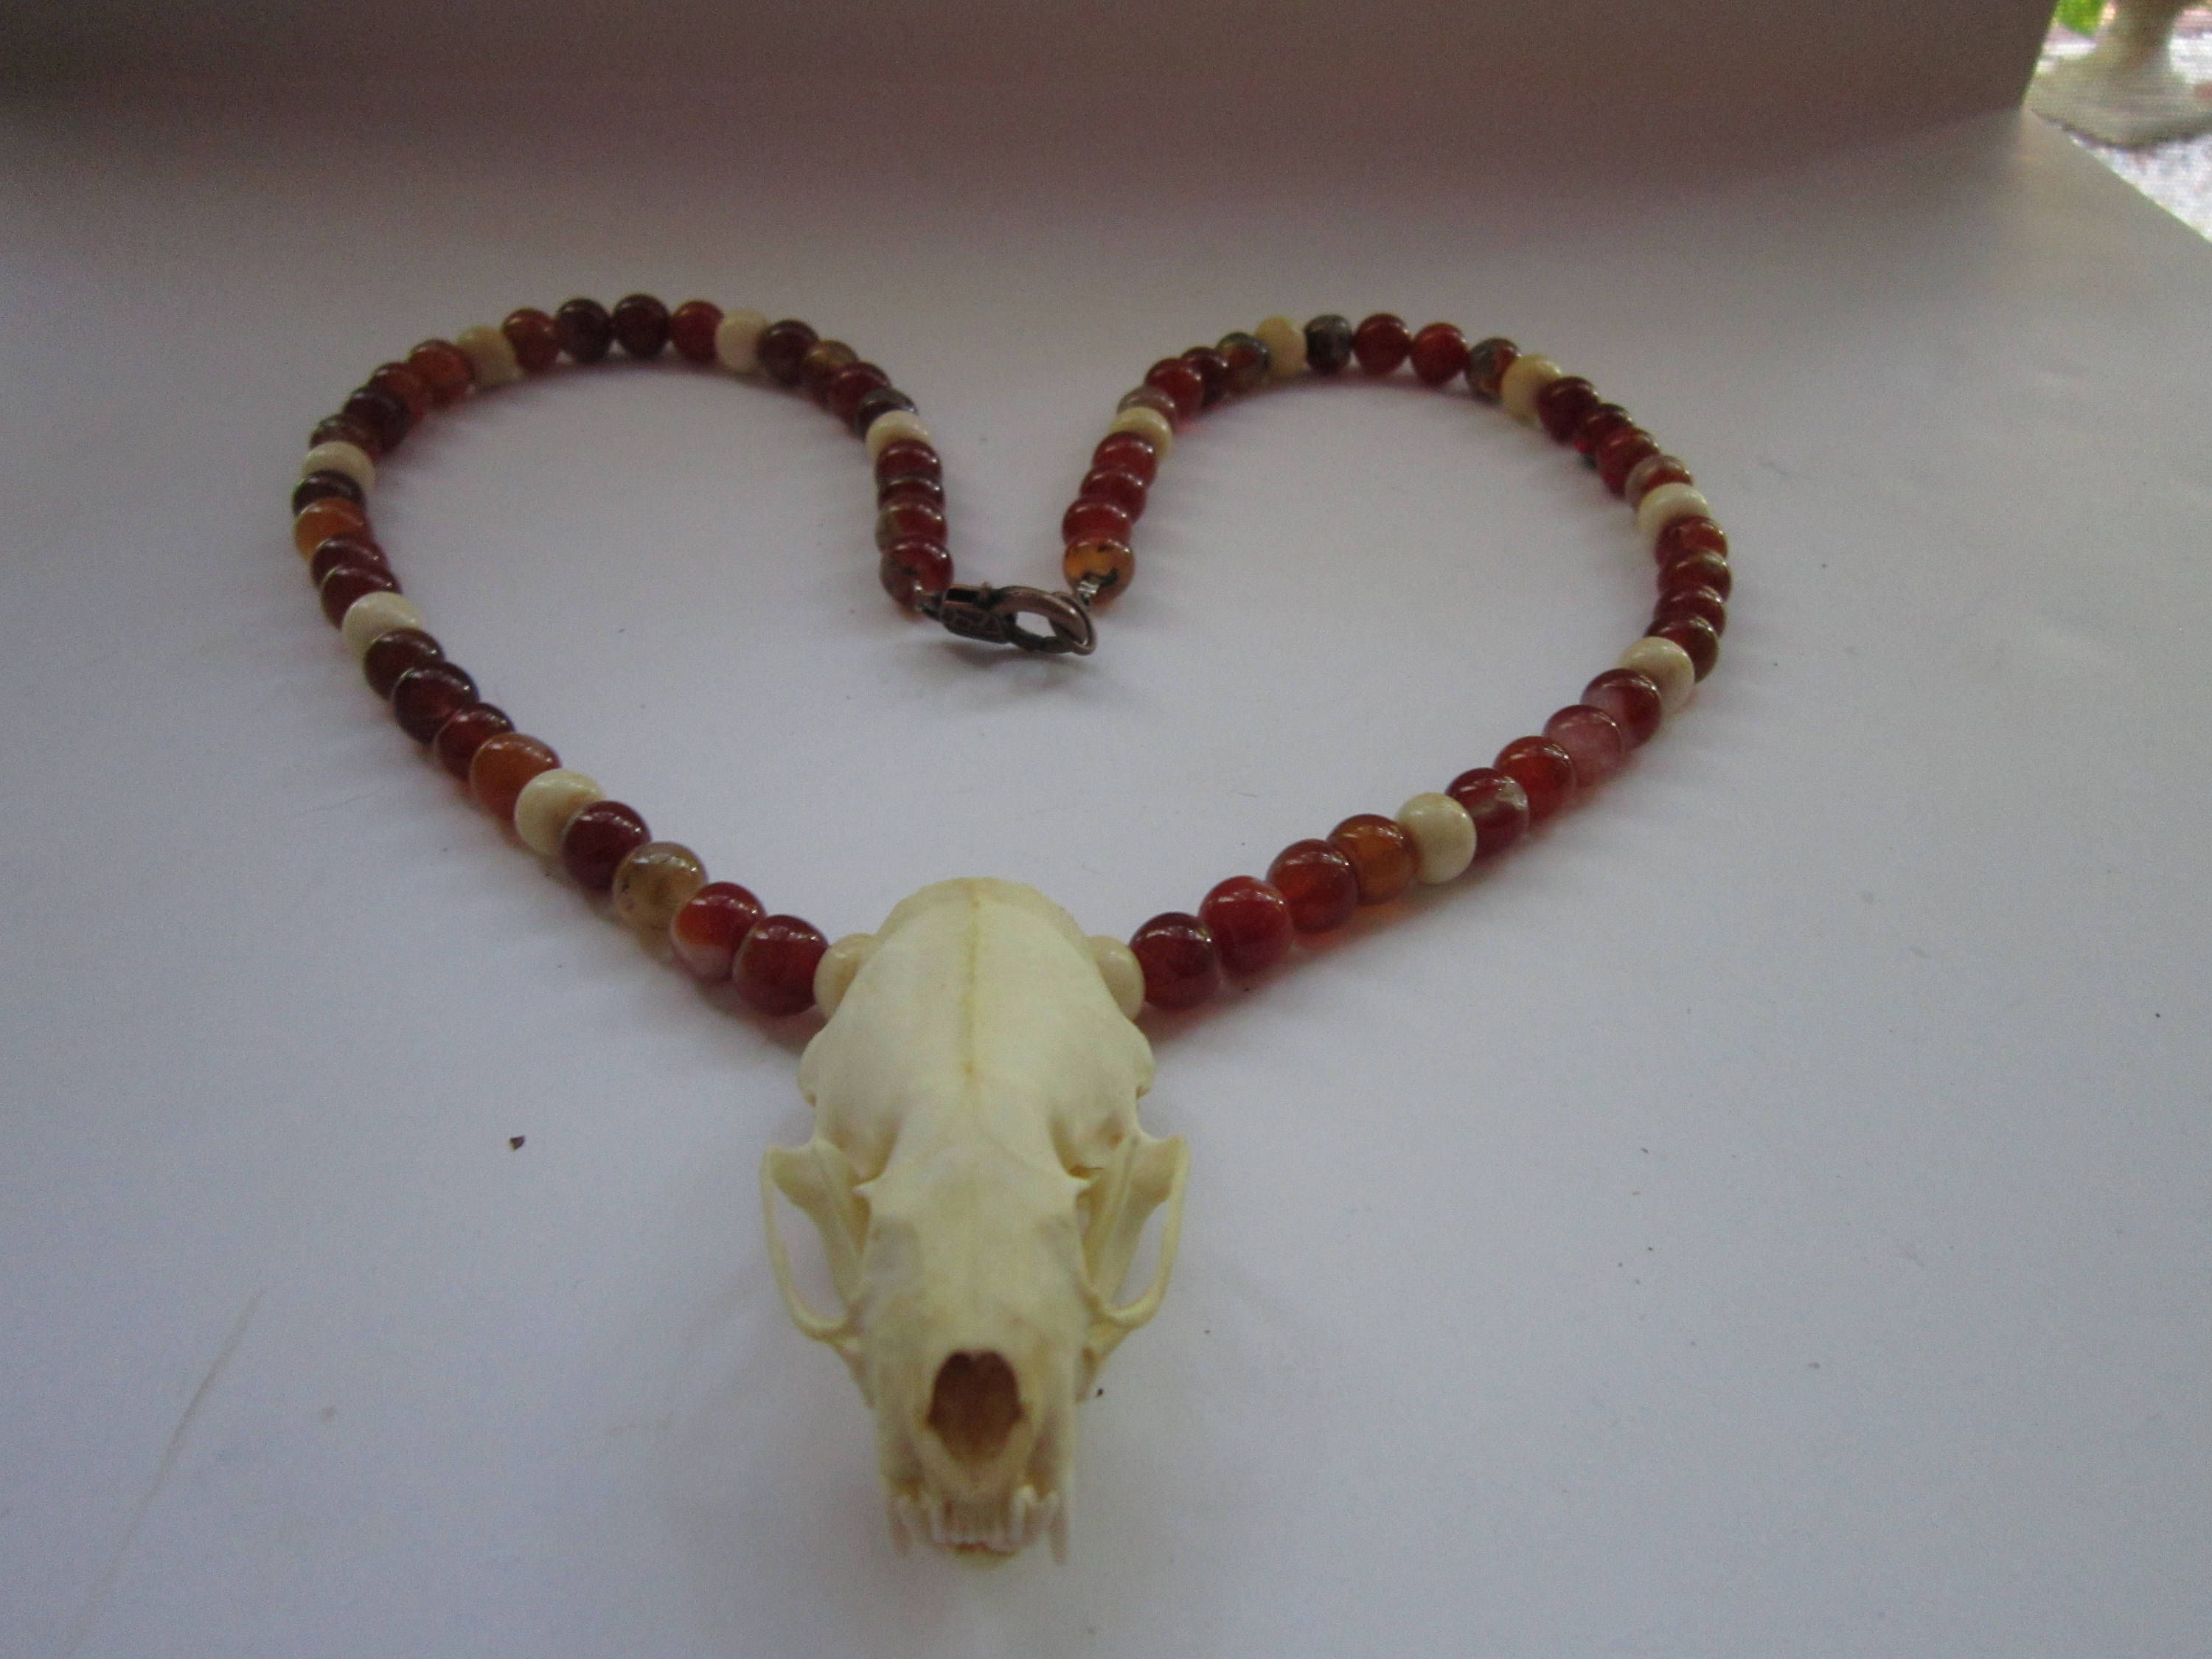 skull vulture bone oddities products small curiousity mouse original jew culture real necklace